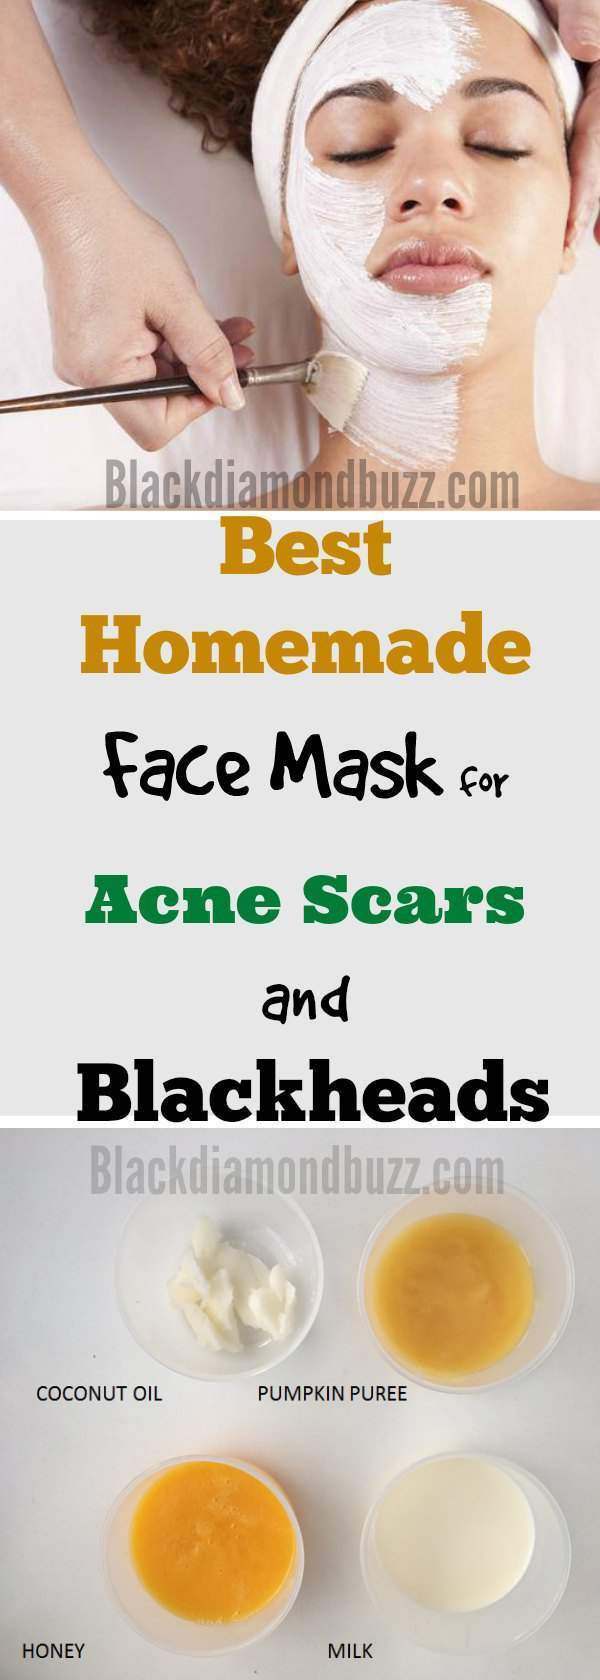 Best ideas about DIY Acne Scar Mask . Save or Pin DIY Face Mask for Acne 7 Best Homemade Face Masks Now.